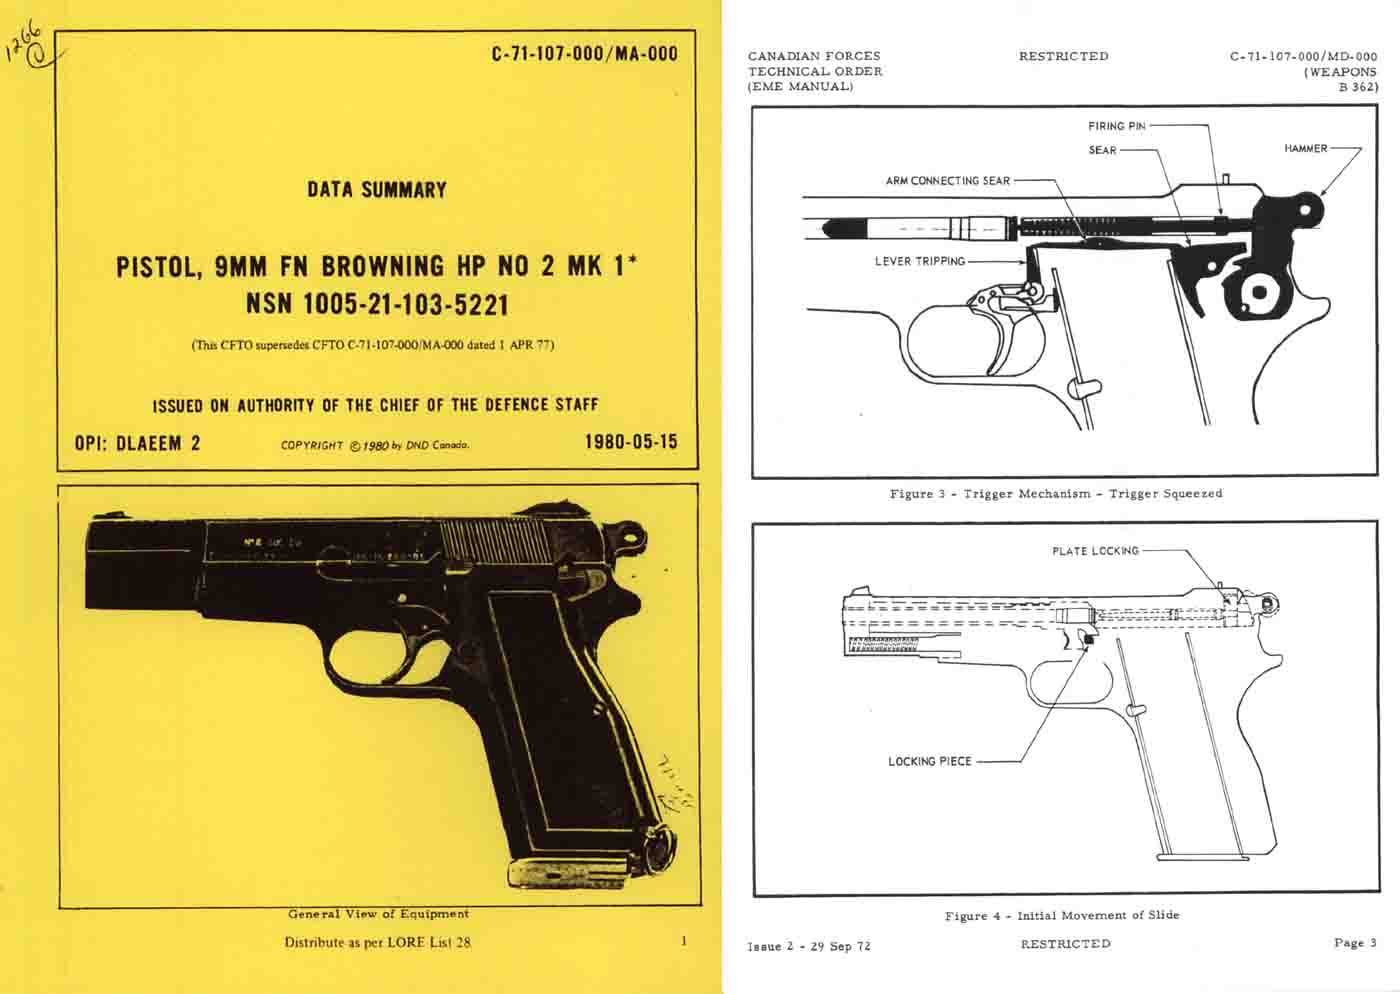 Canadian Services FN 9mm No. 2, Mark 1 Pistol Manual